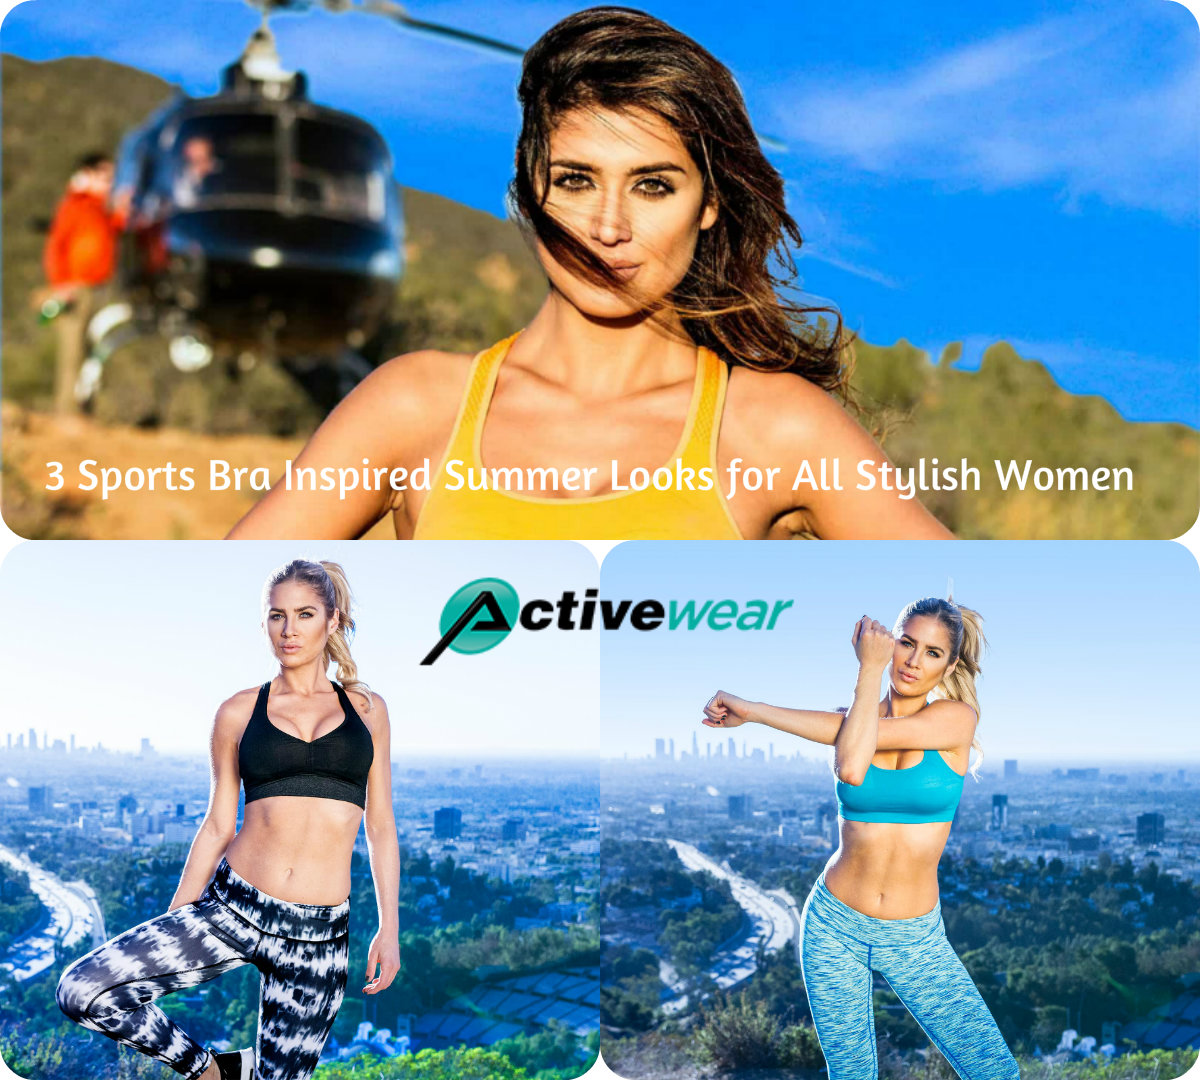 3 Sports Bra Inspired Summer Looks for All Stylish Women by Activewear Manufacturer